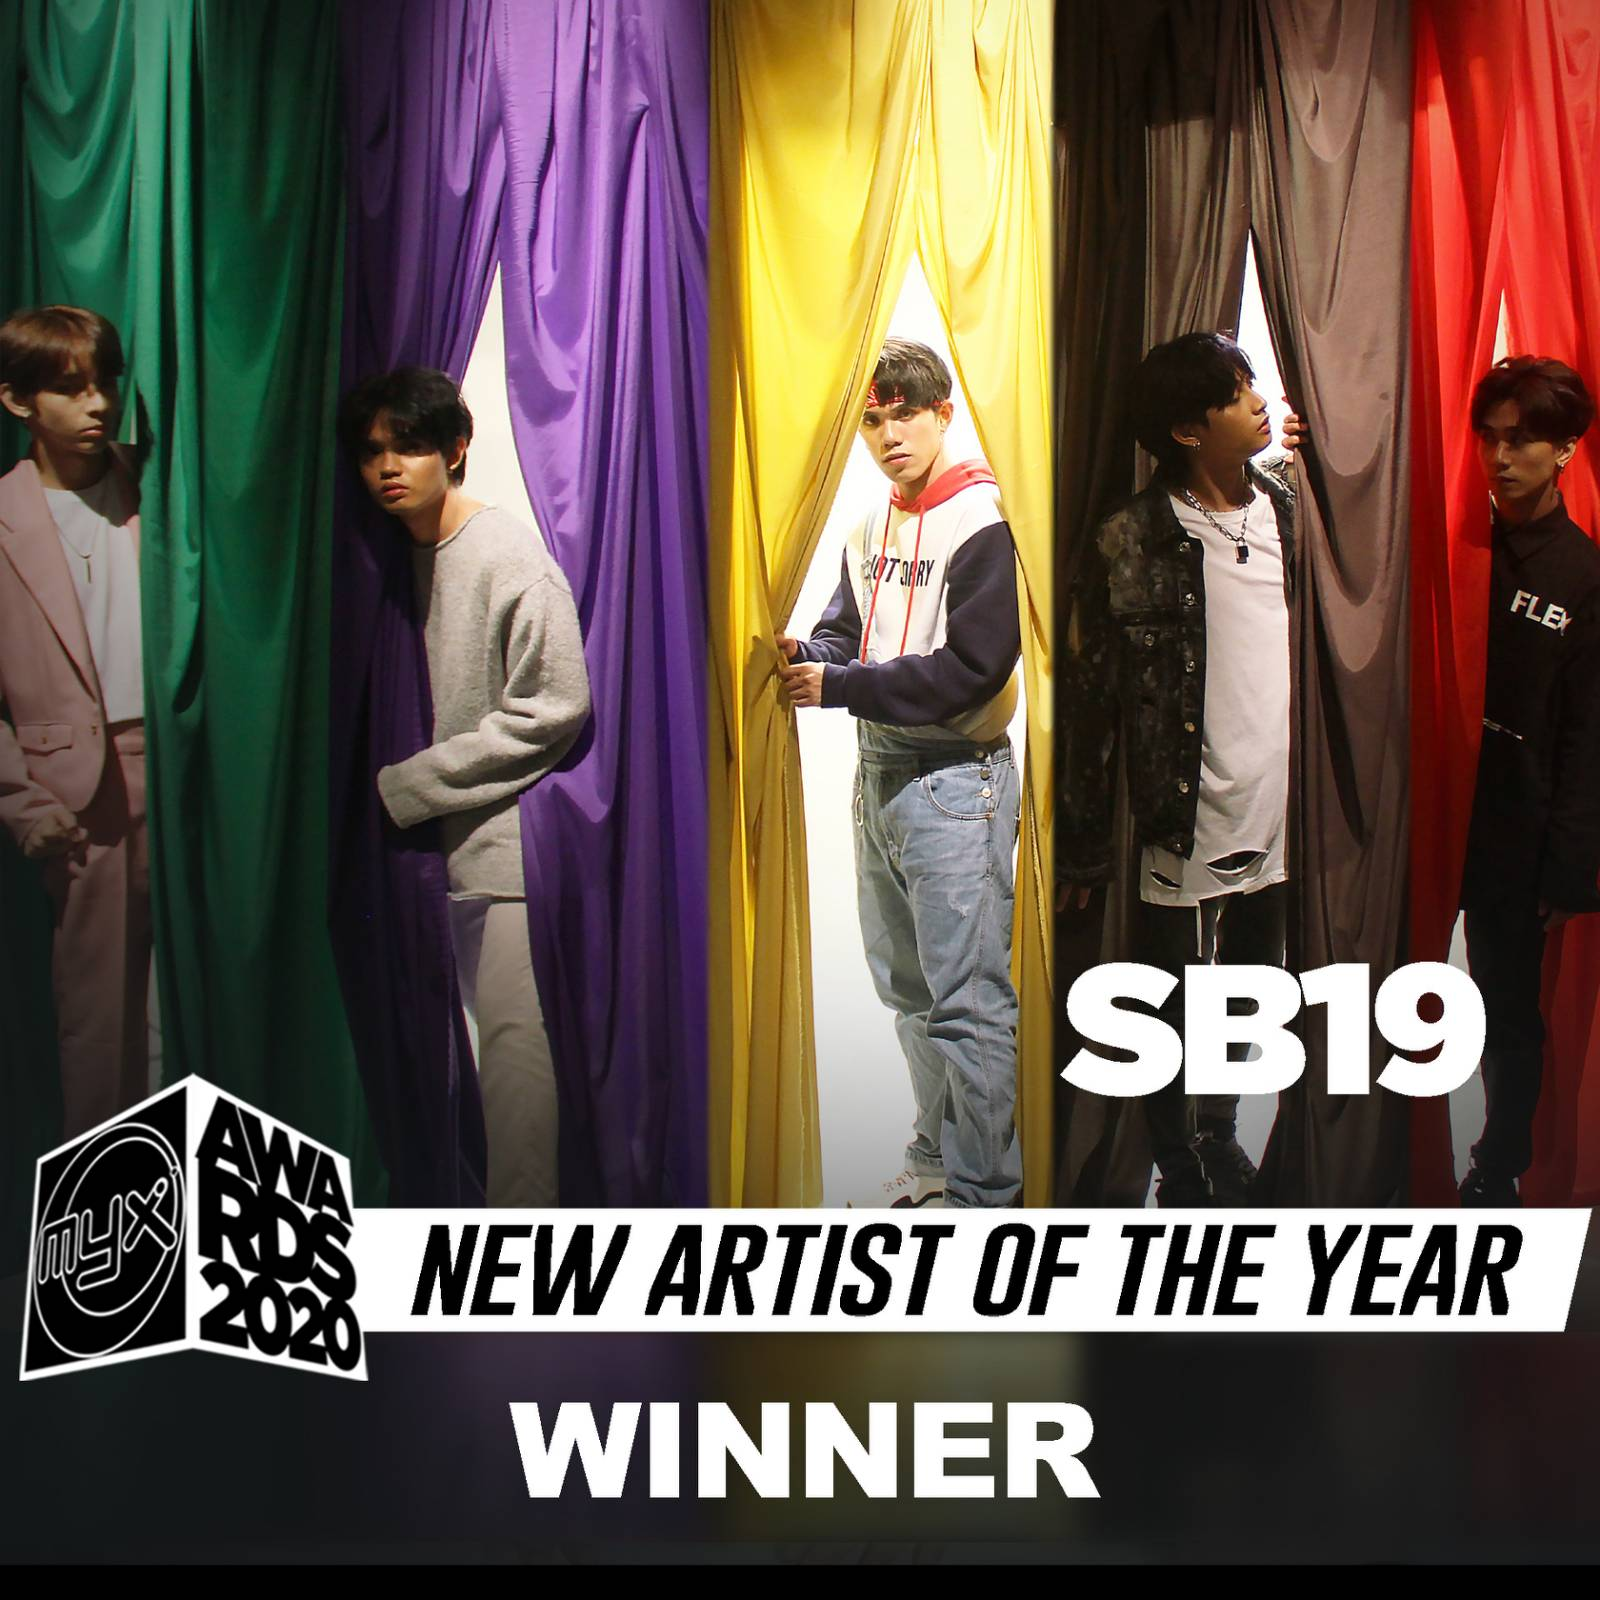 SB19 is New Artist of the Year